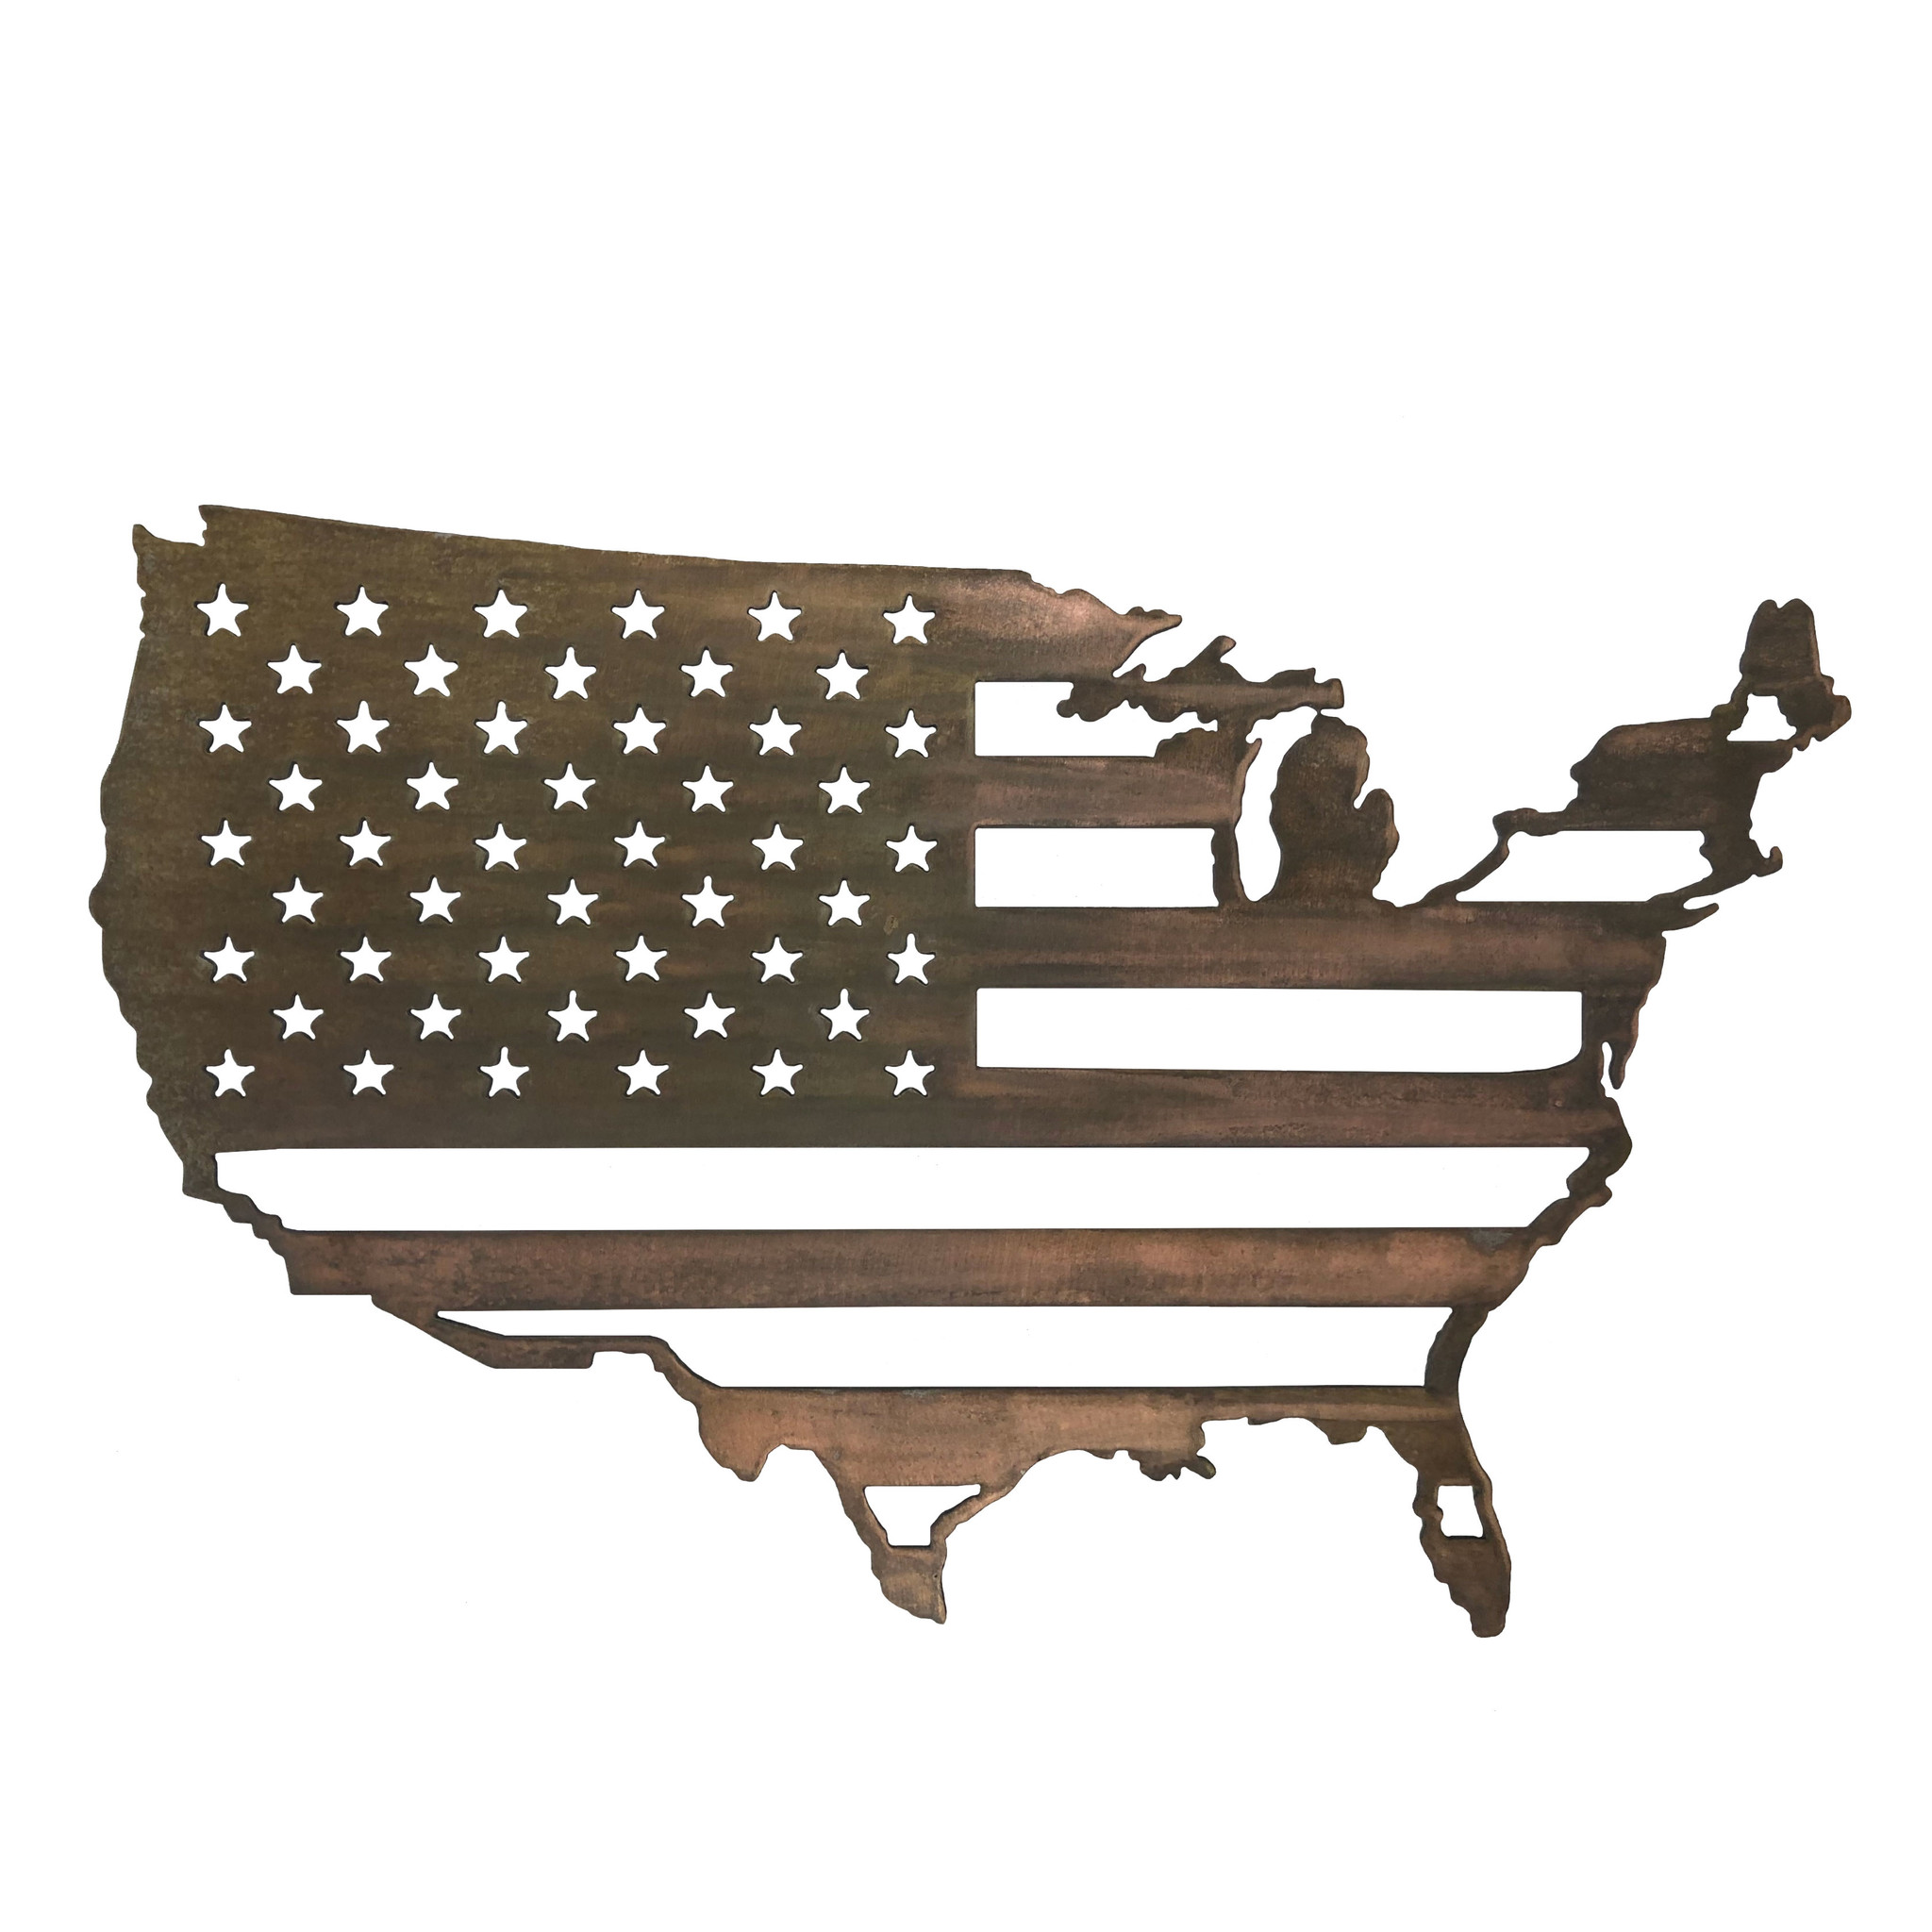 United States w/ Flag Inside - Small 24 x 15